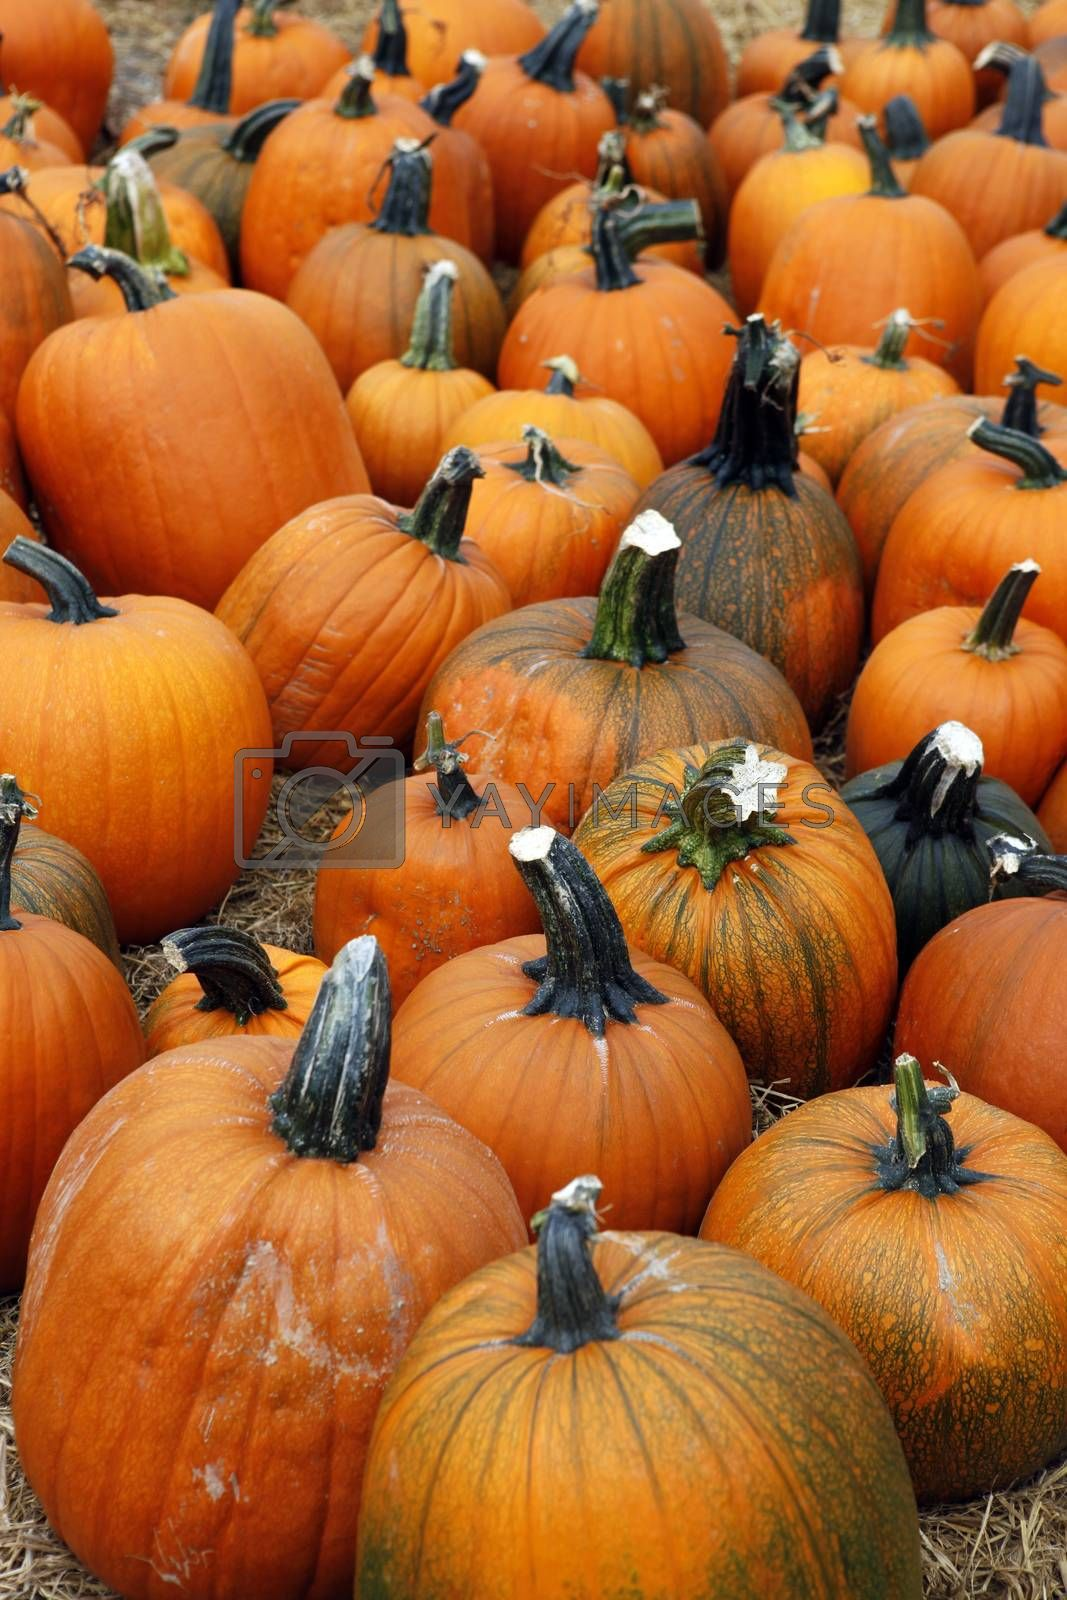 Fair of a pumpkins in California by friday